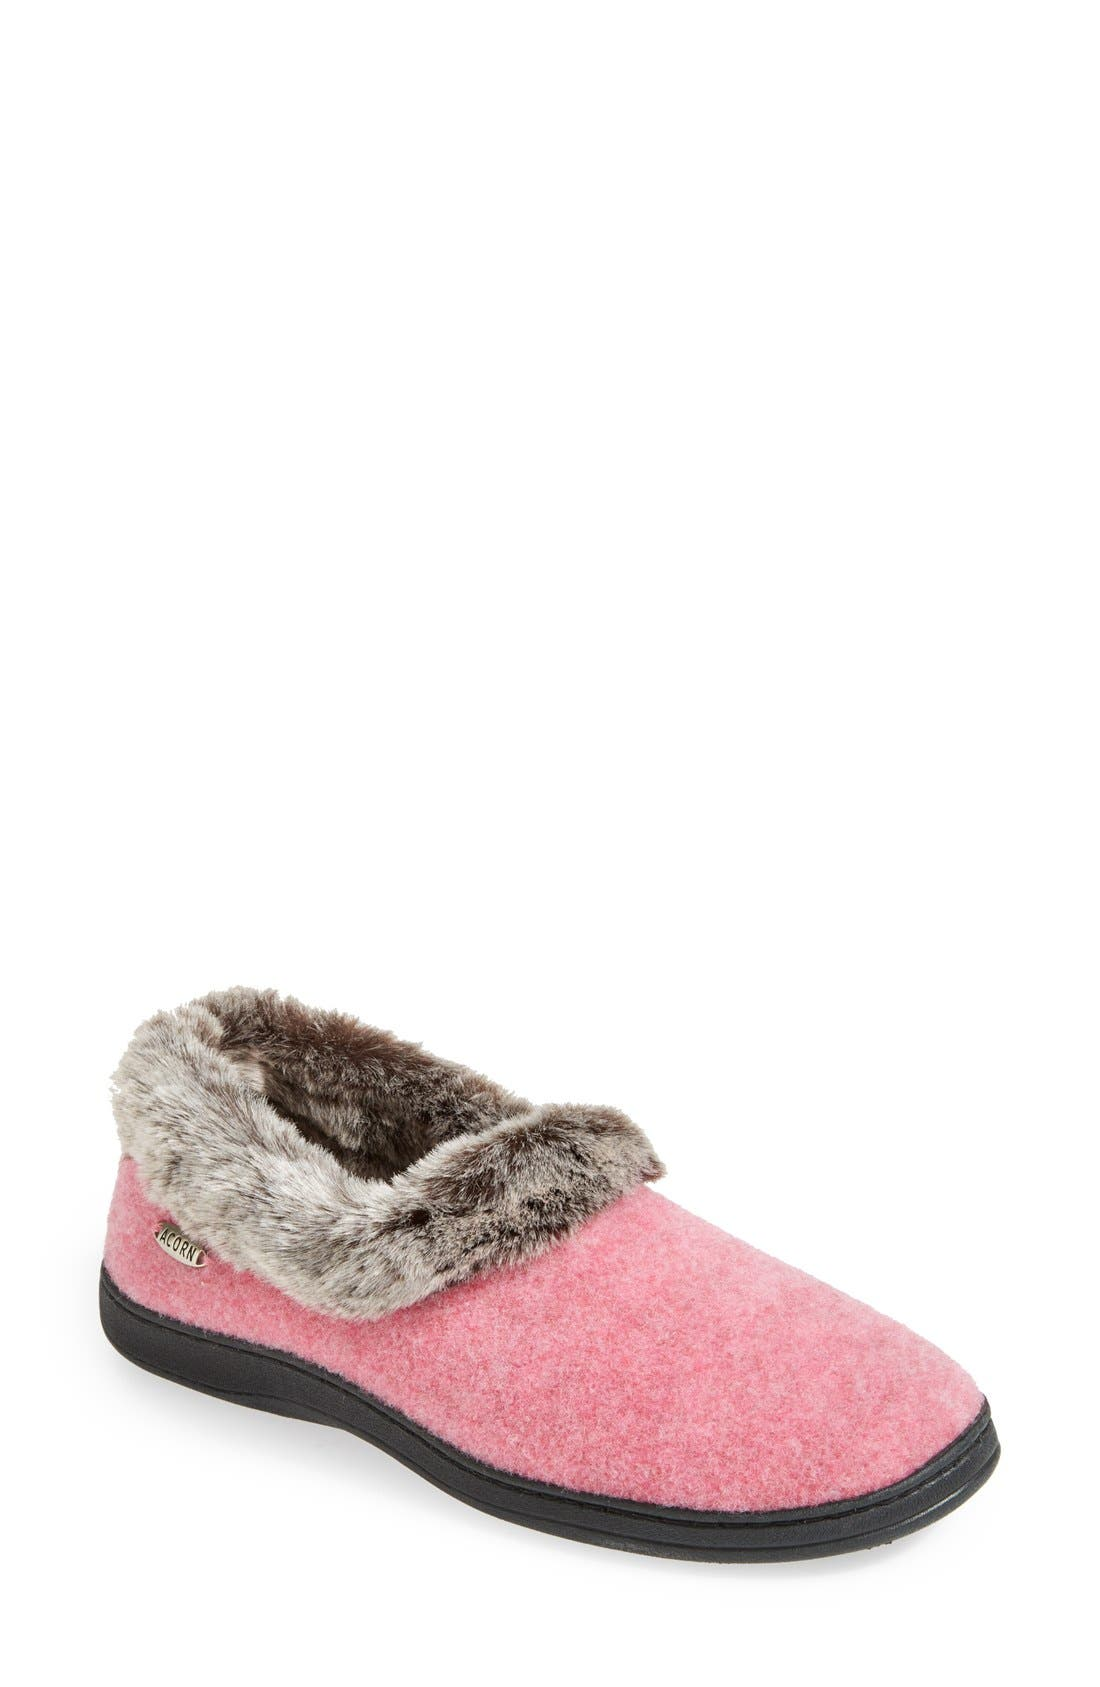 Alternate Image 1 Selected - Acorn 'Chinchilla Collar' Faux Fur Slipper (Women)